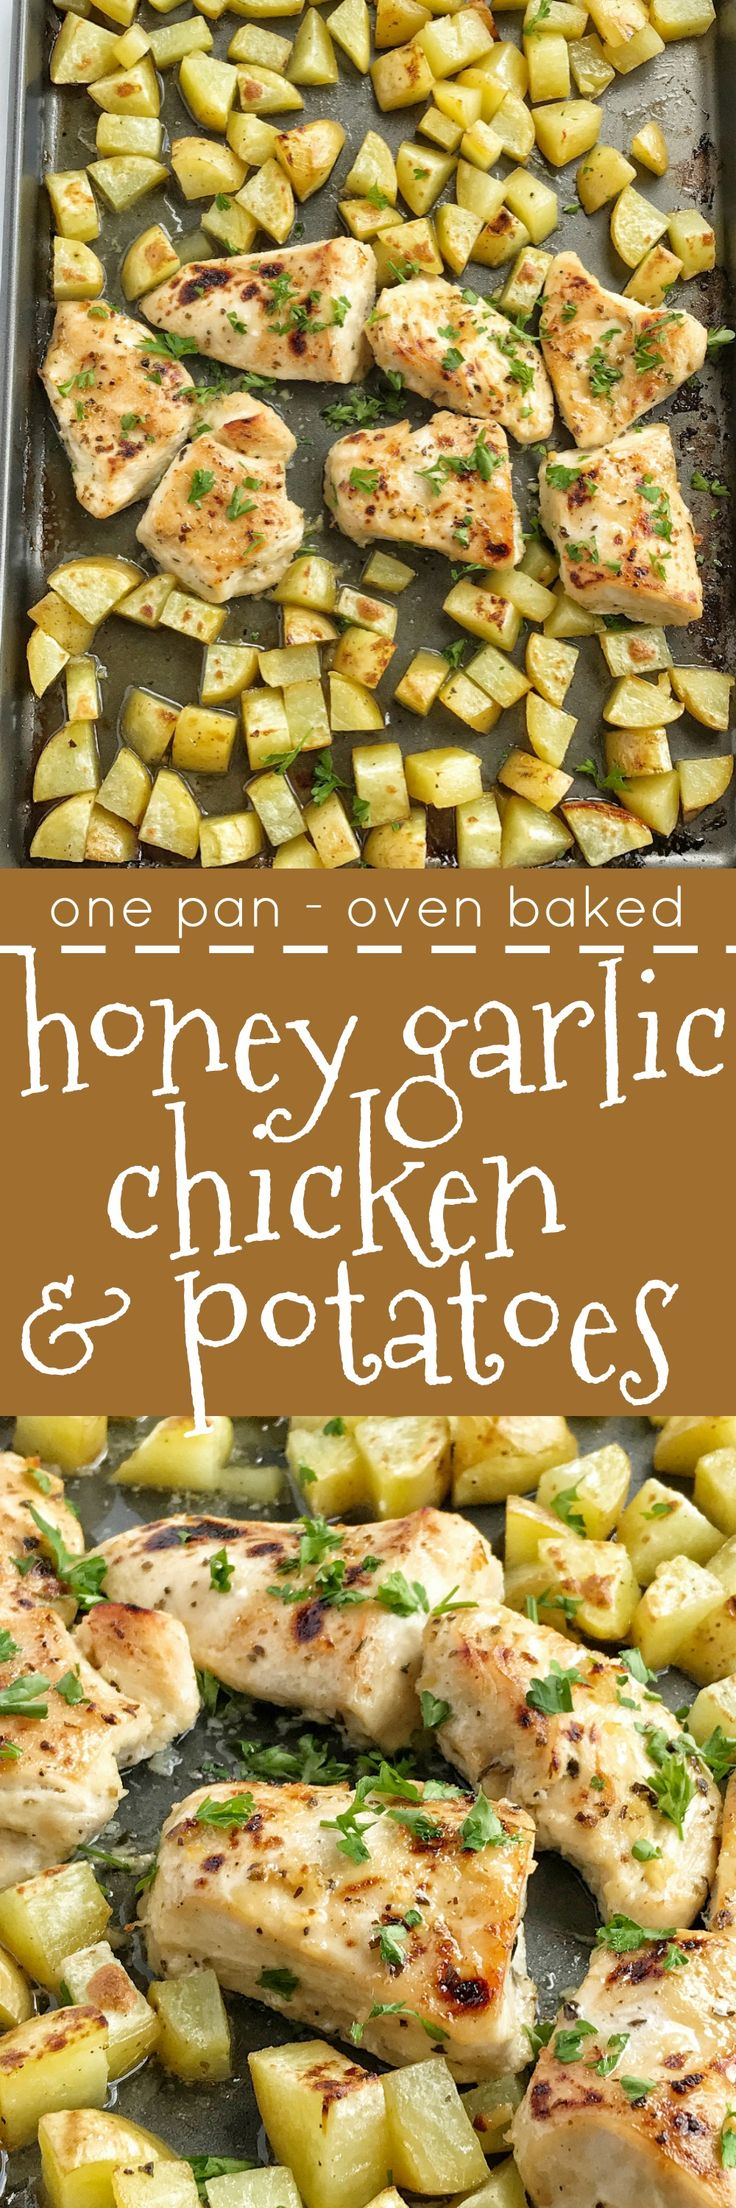 One pan and the oven is all you need for a delicious and hearty marinated honey garlic chicken dinner. Moist, tender chicken glazed with a honey garlic sauce and chunked potatoes covered in a simple seasoning of olive oil, salt, and pepper. This is a must try for dinner!